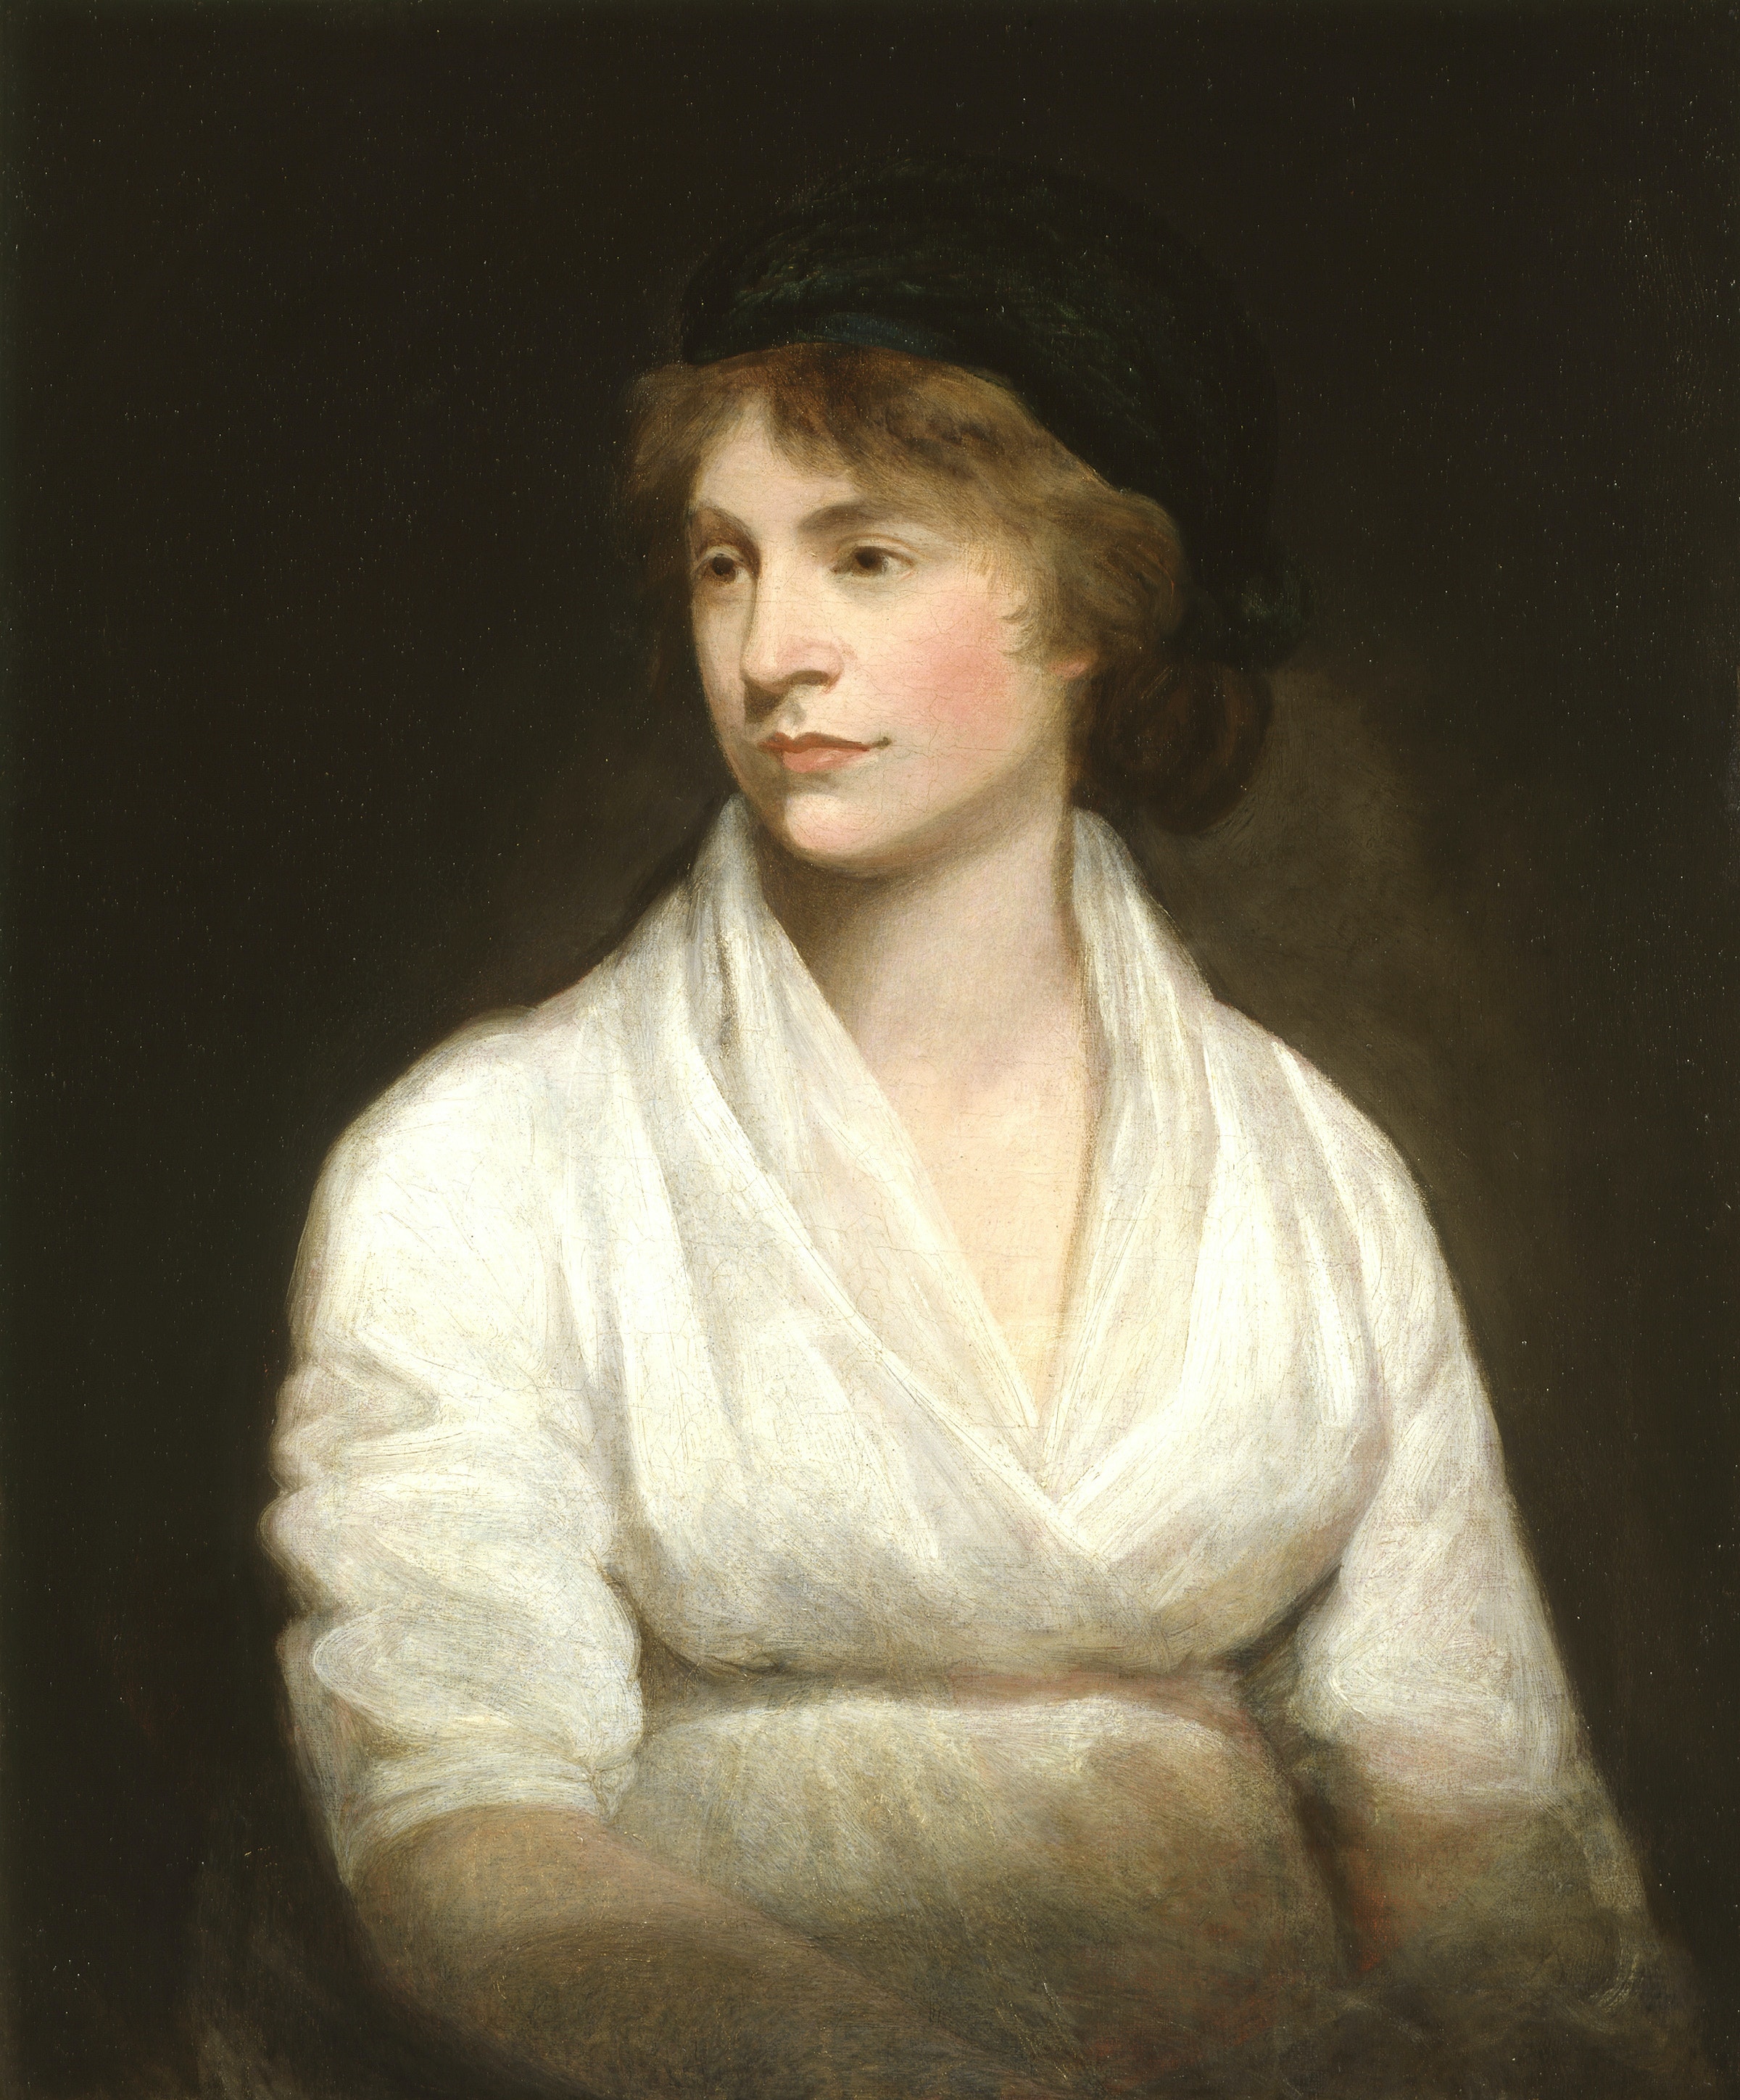 Painting of Mary Wollstonecraft by John Opie